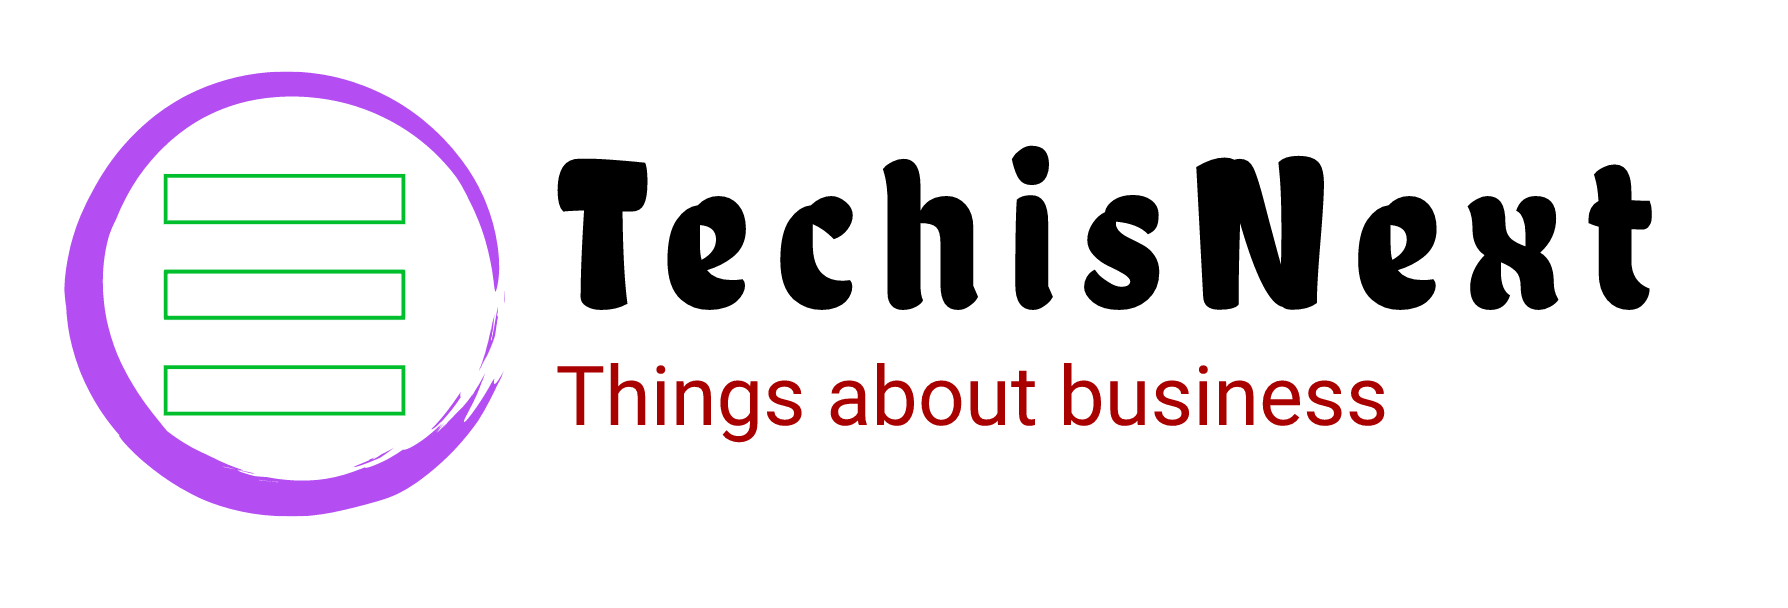 Contact Us - TechisNext